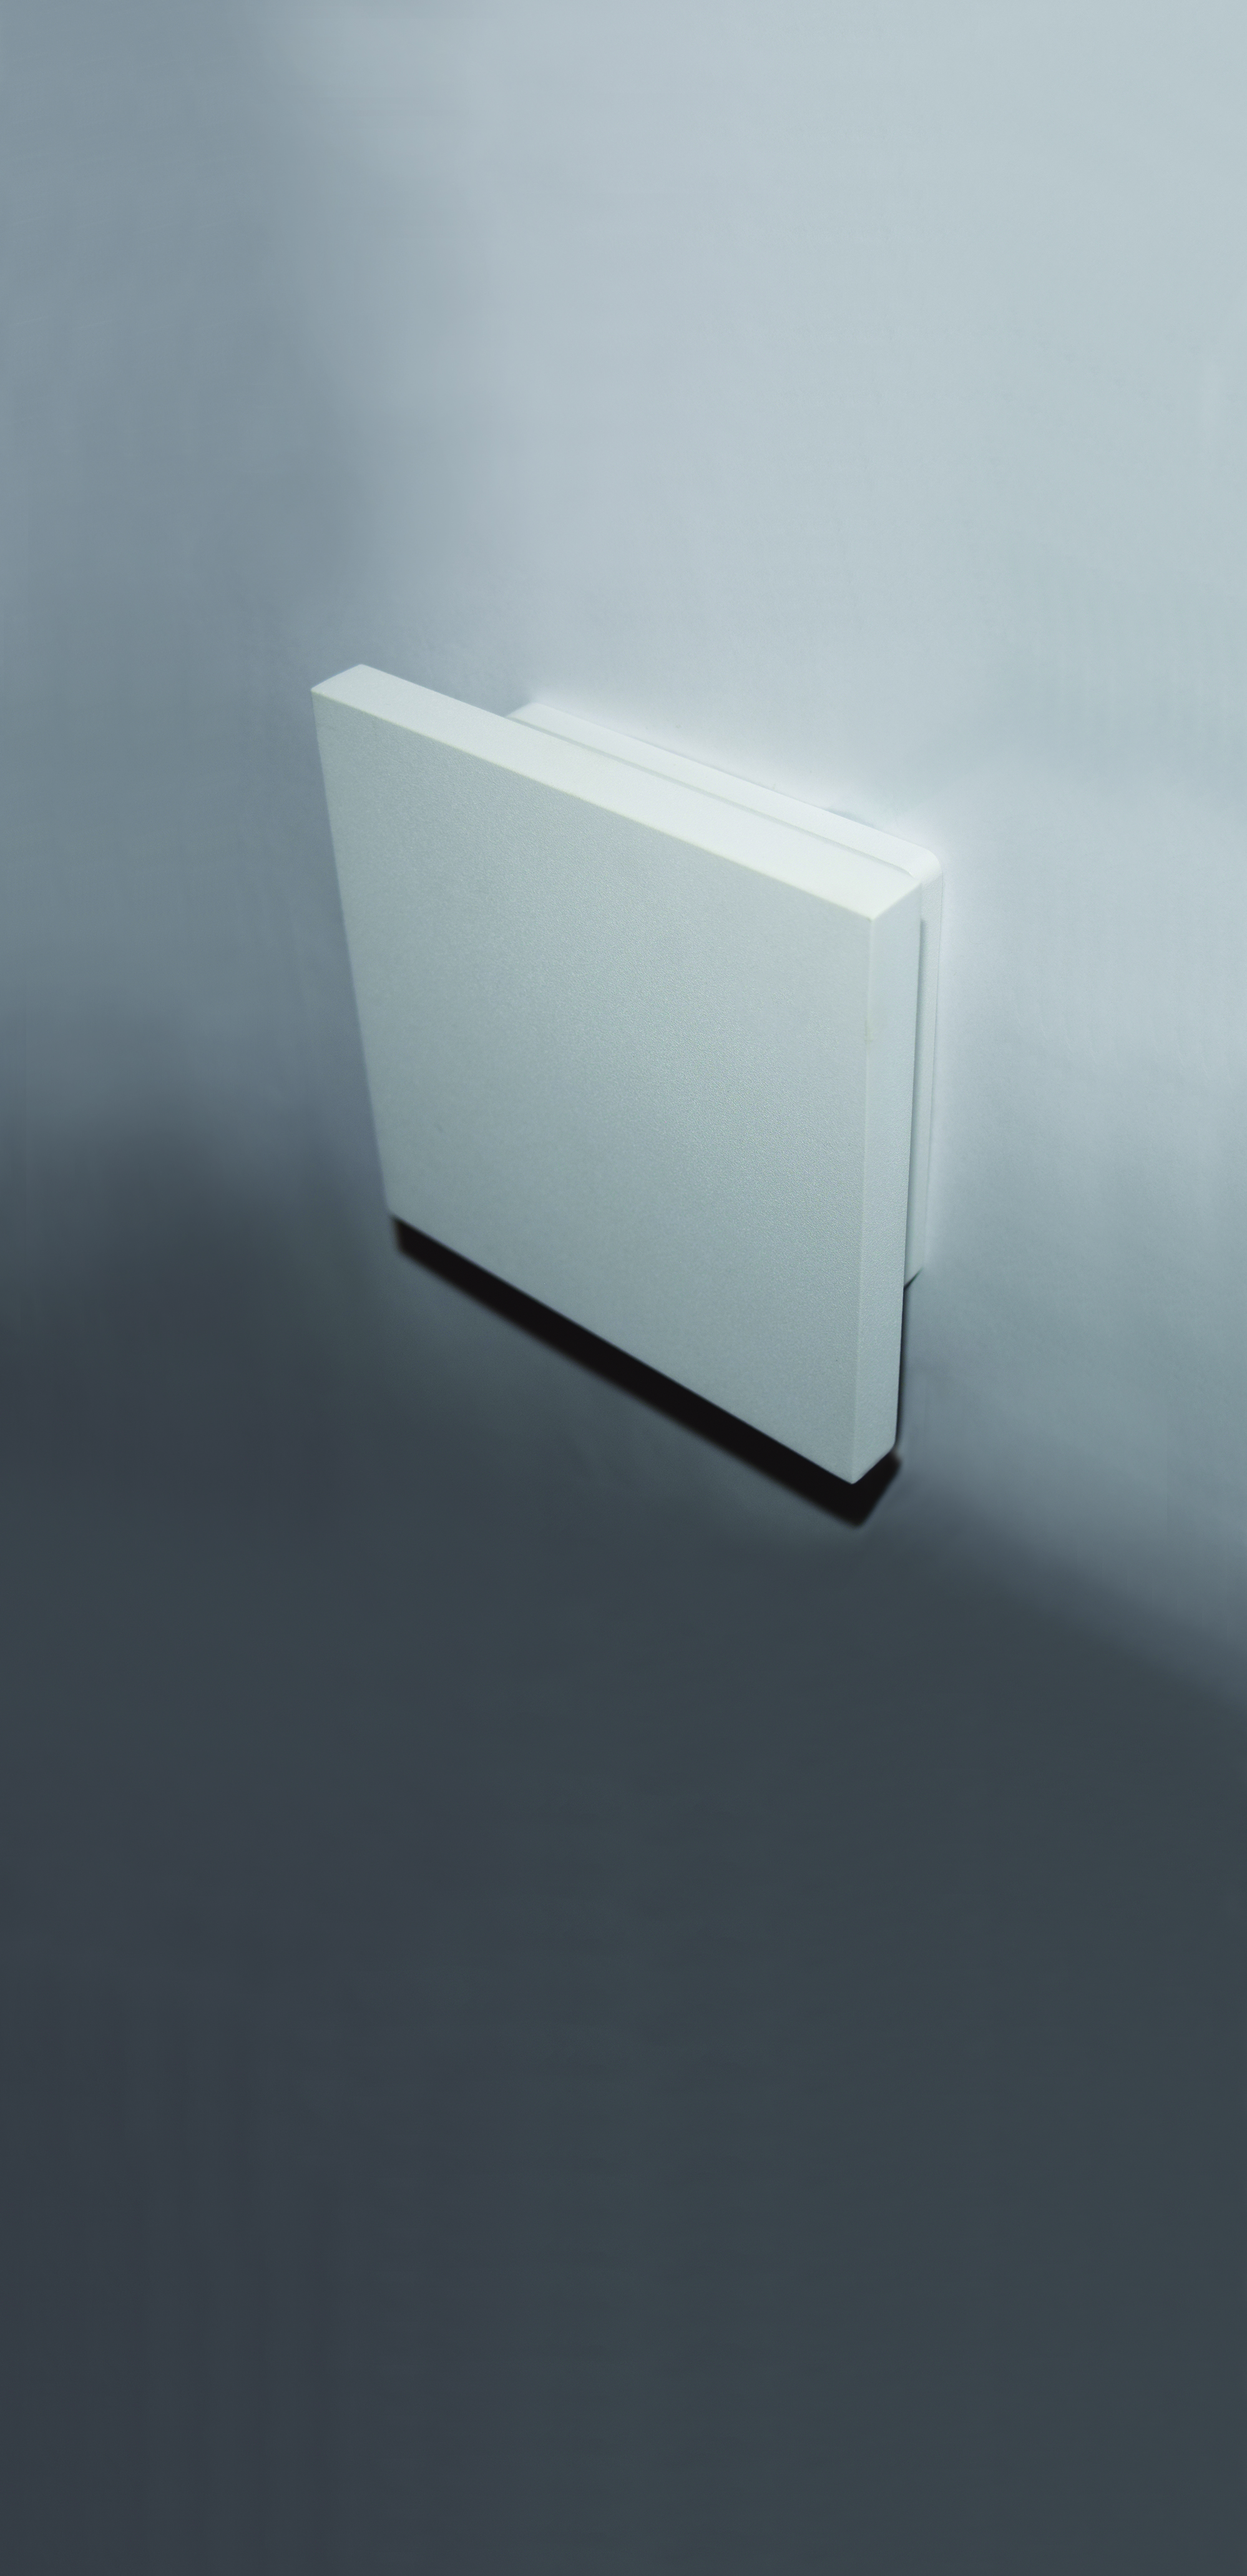 Alumilux Led Outdoor Wall Sconce Outdoor Et2 Online